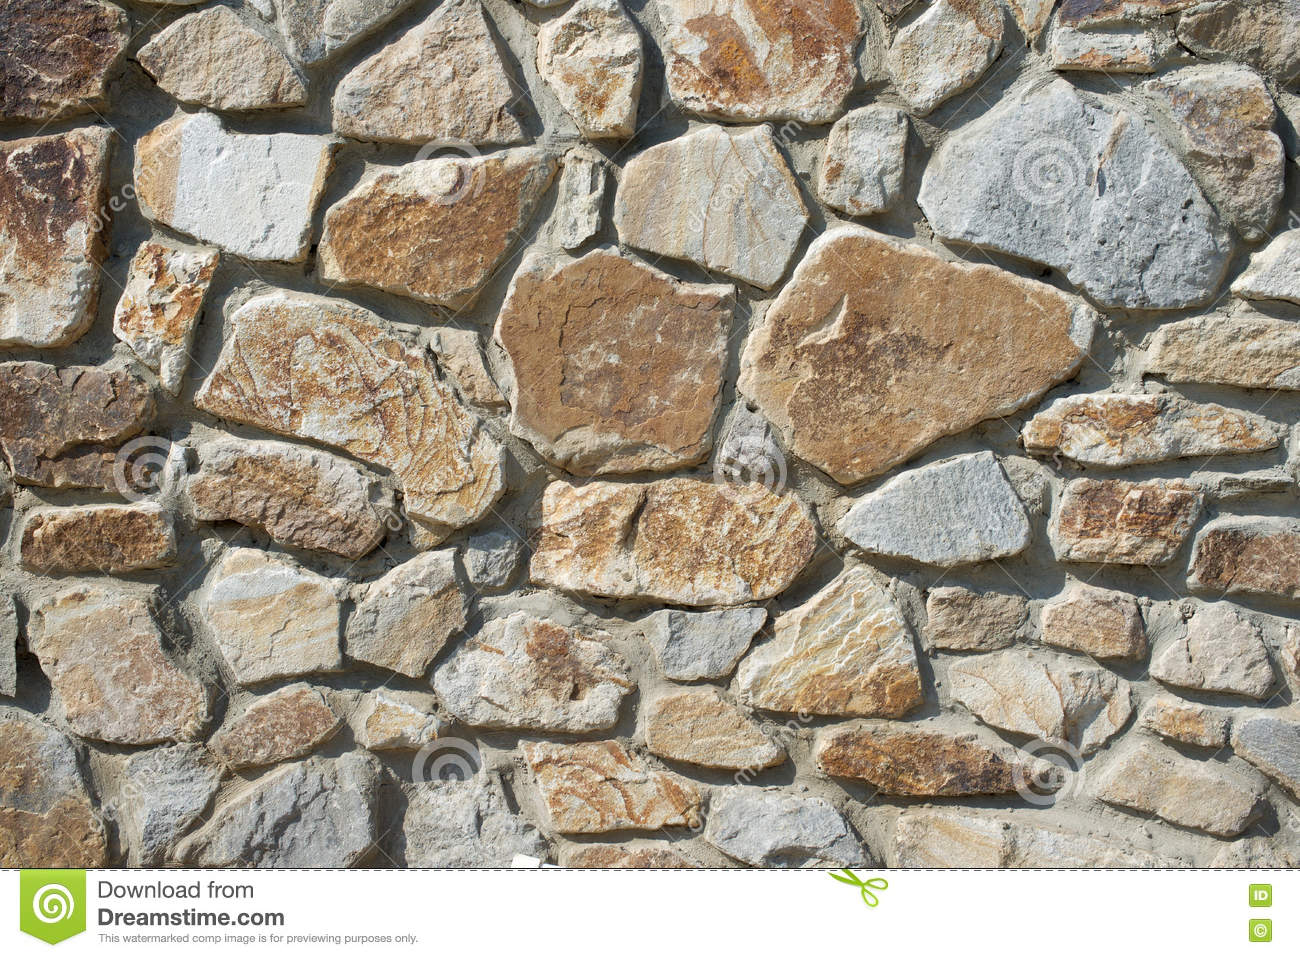 Natural rough stone wall texture stock image image of dirty construction 79698619 - Flaunt your natural stone wall finishes ...